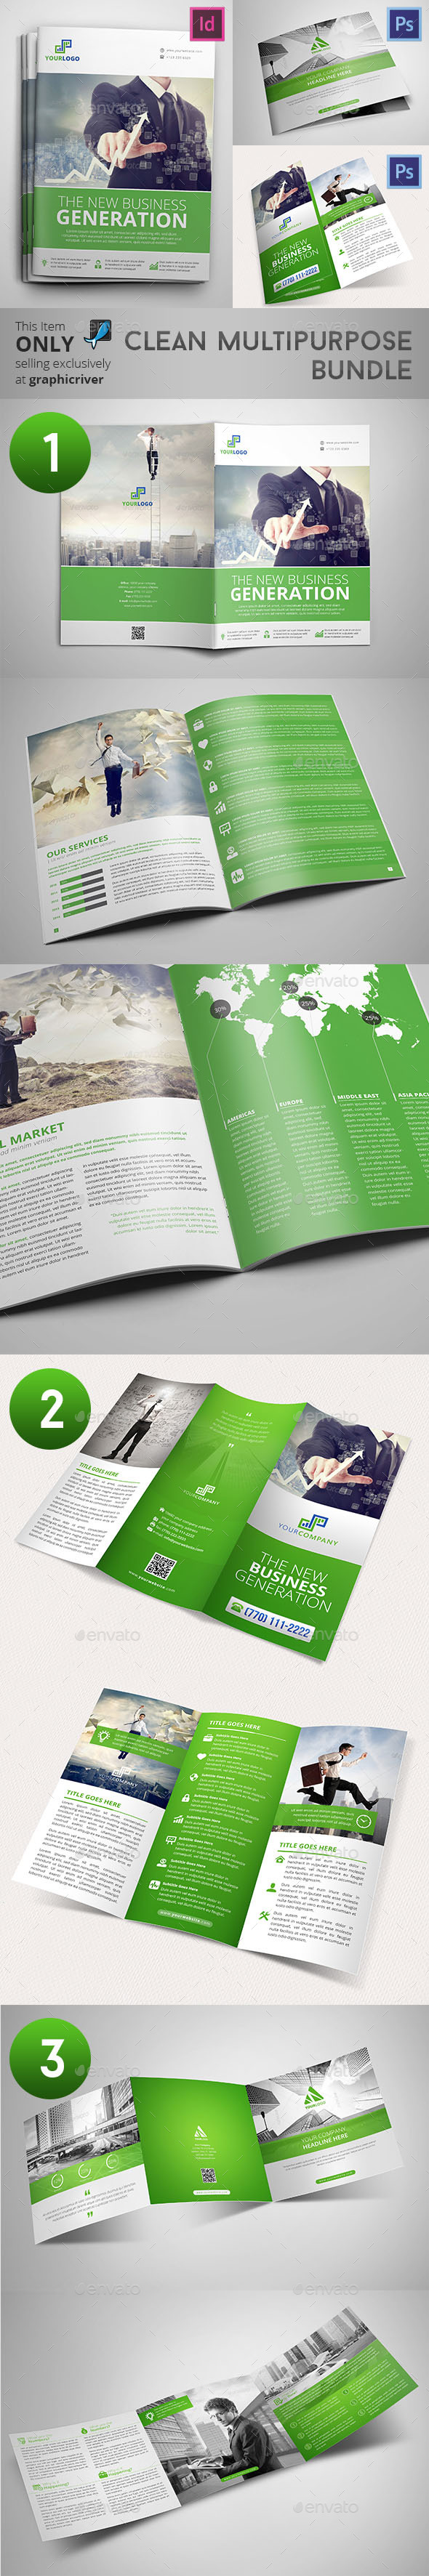 GraphicRiver Clean Multipurpose Bundle 9537366